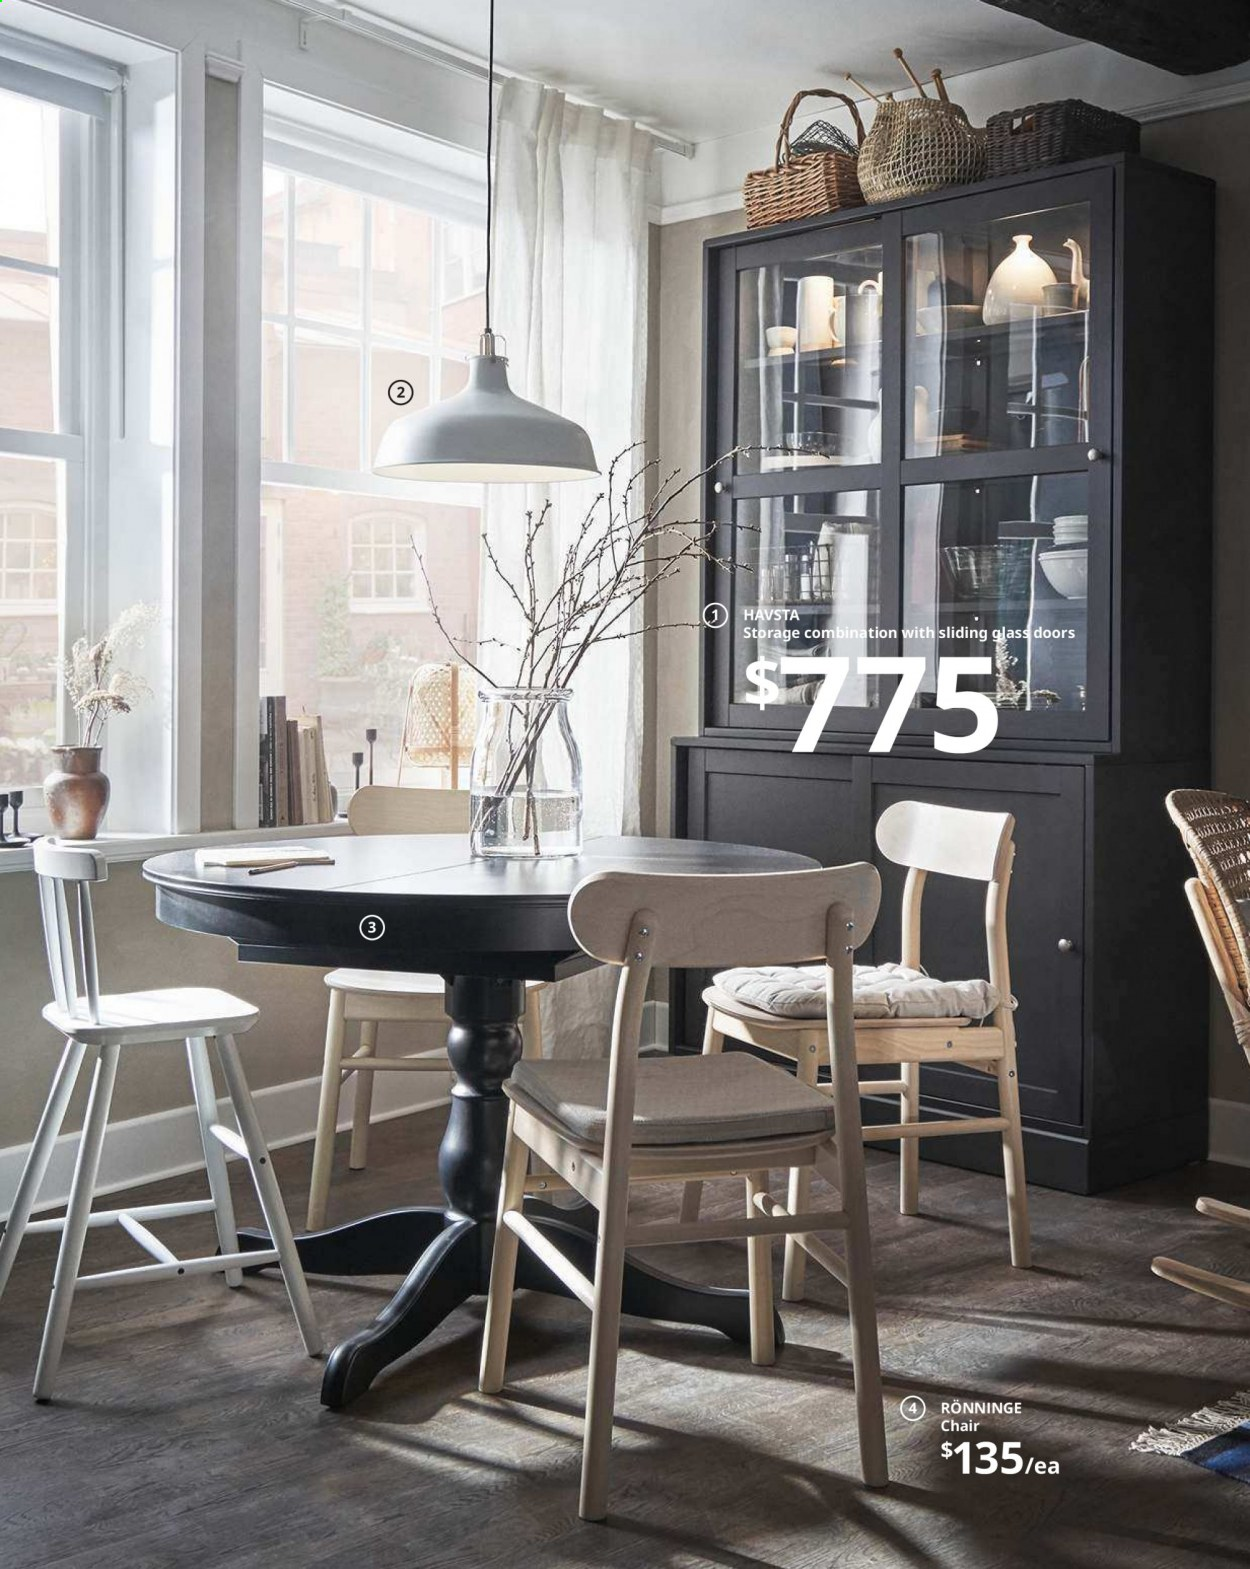 IKEA offer  - Sales products - bag, door, extendable table, glass, lamp, table, chair, powder, pendant, pendant lamp. Page 44.